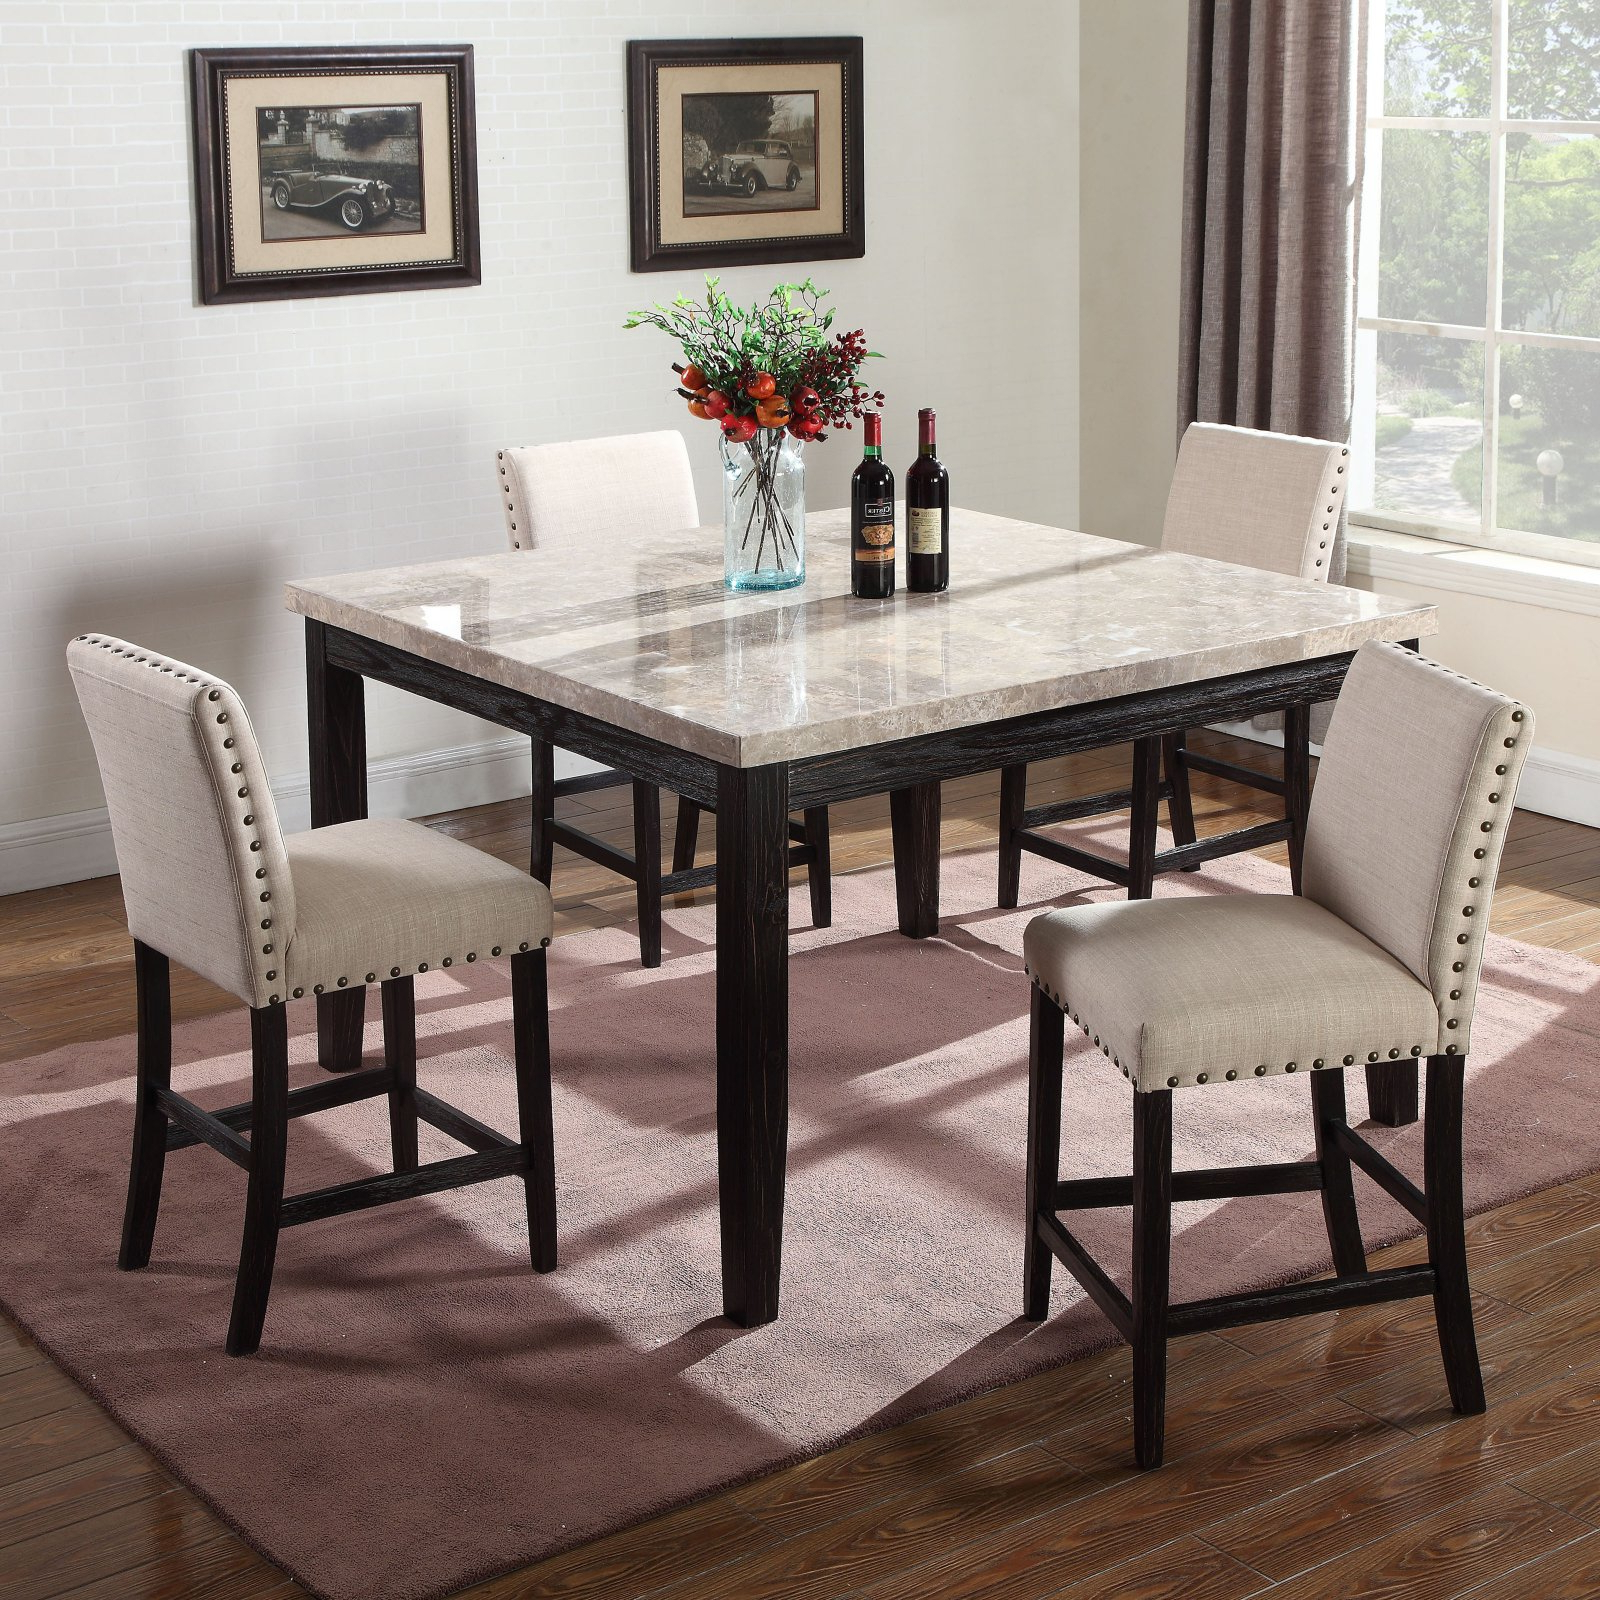 Transitional Antique Walnut Square Casual Dining Tables With Regard To Popular Best Master Furniture Celeste Square 5 Piece Faux Marble (View 7 of 30)